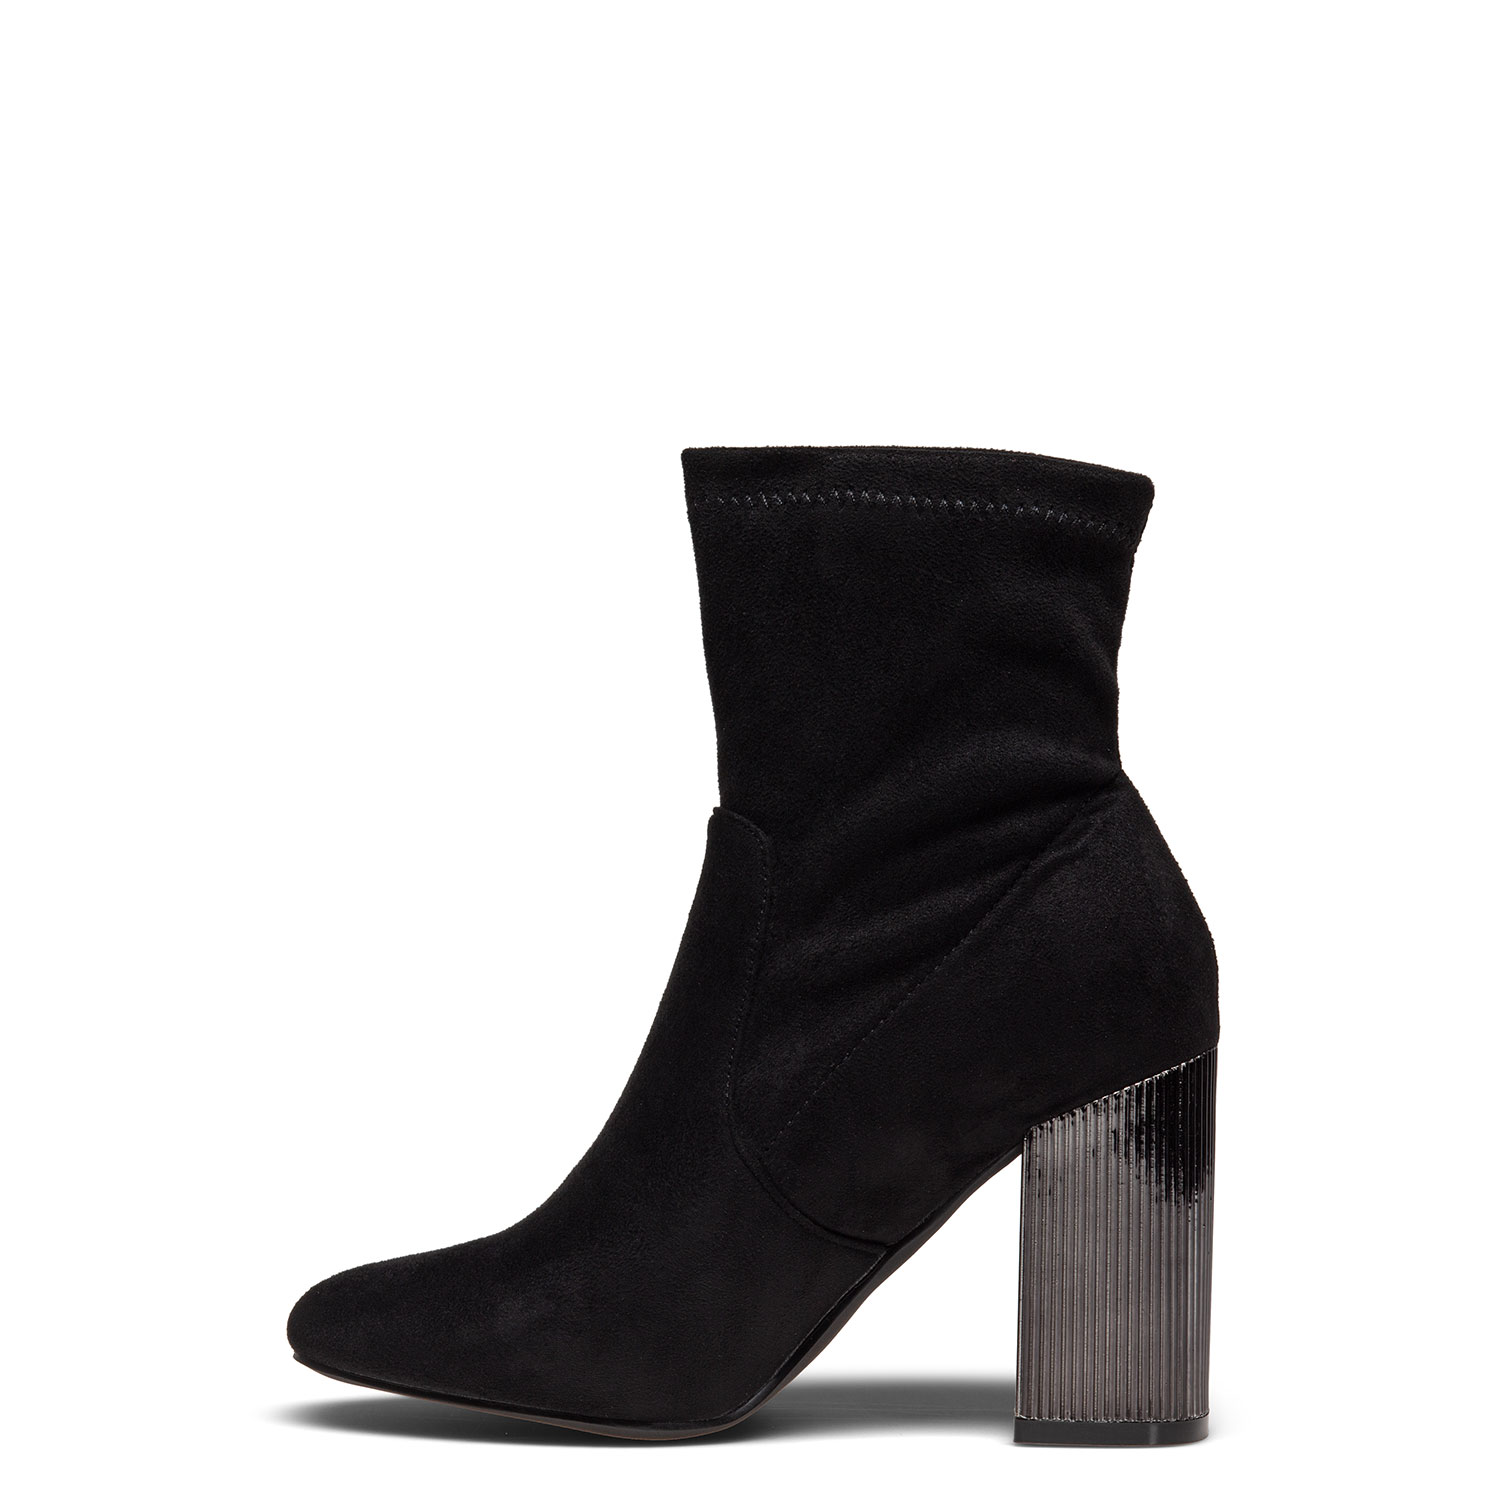 Women's ankle boots PAZOLINI KH-X5454-1